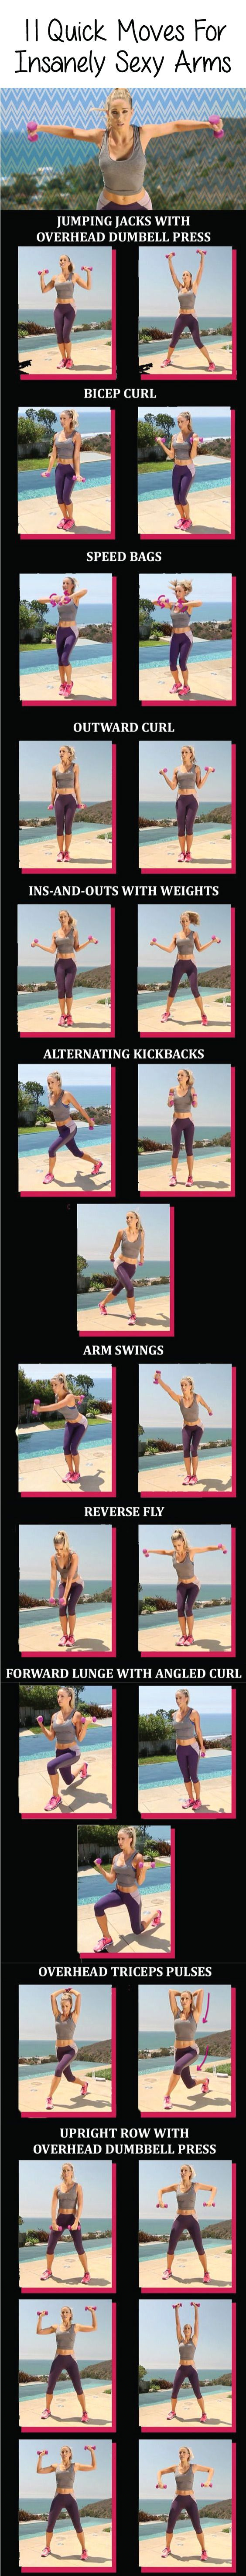 Want to sculpt your arms and shoulders into seriously sexy shape? These exercises were designed by a certified trainer Astrid McGuire to do just that.